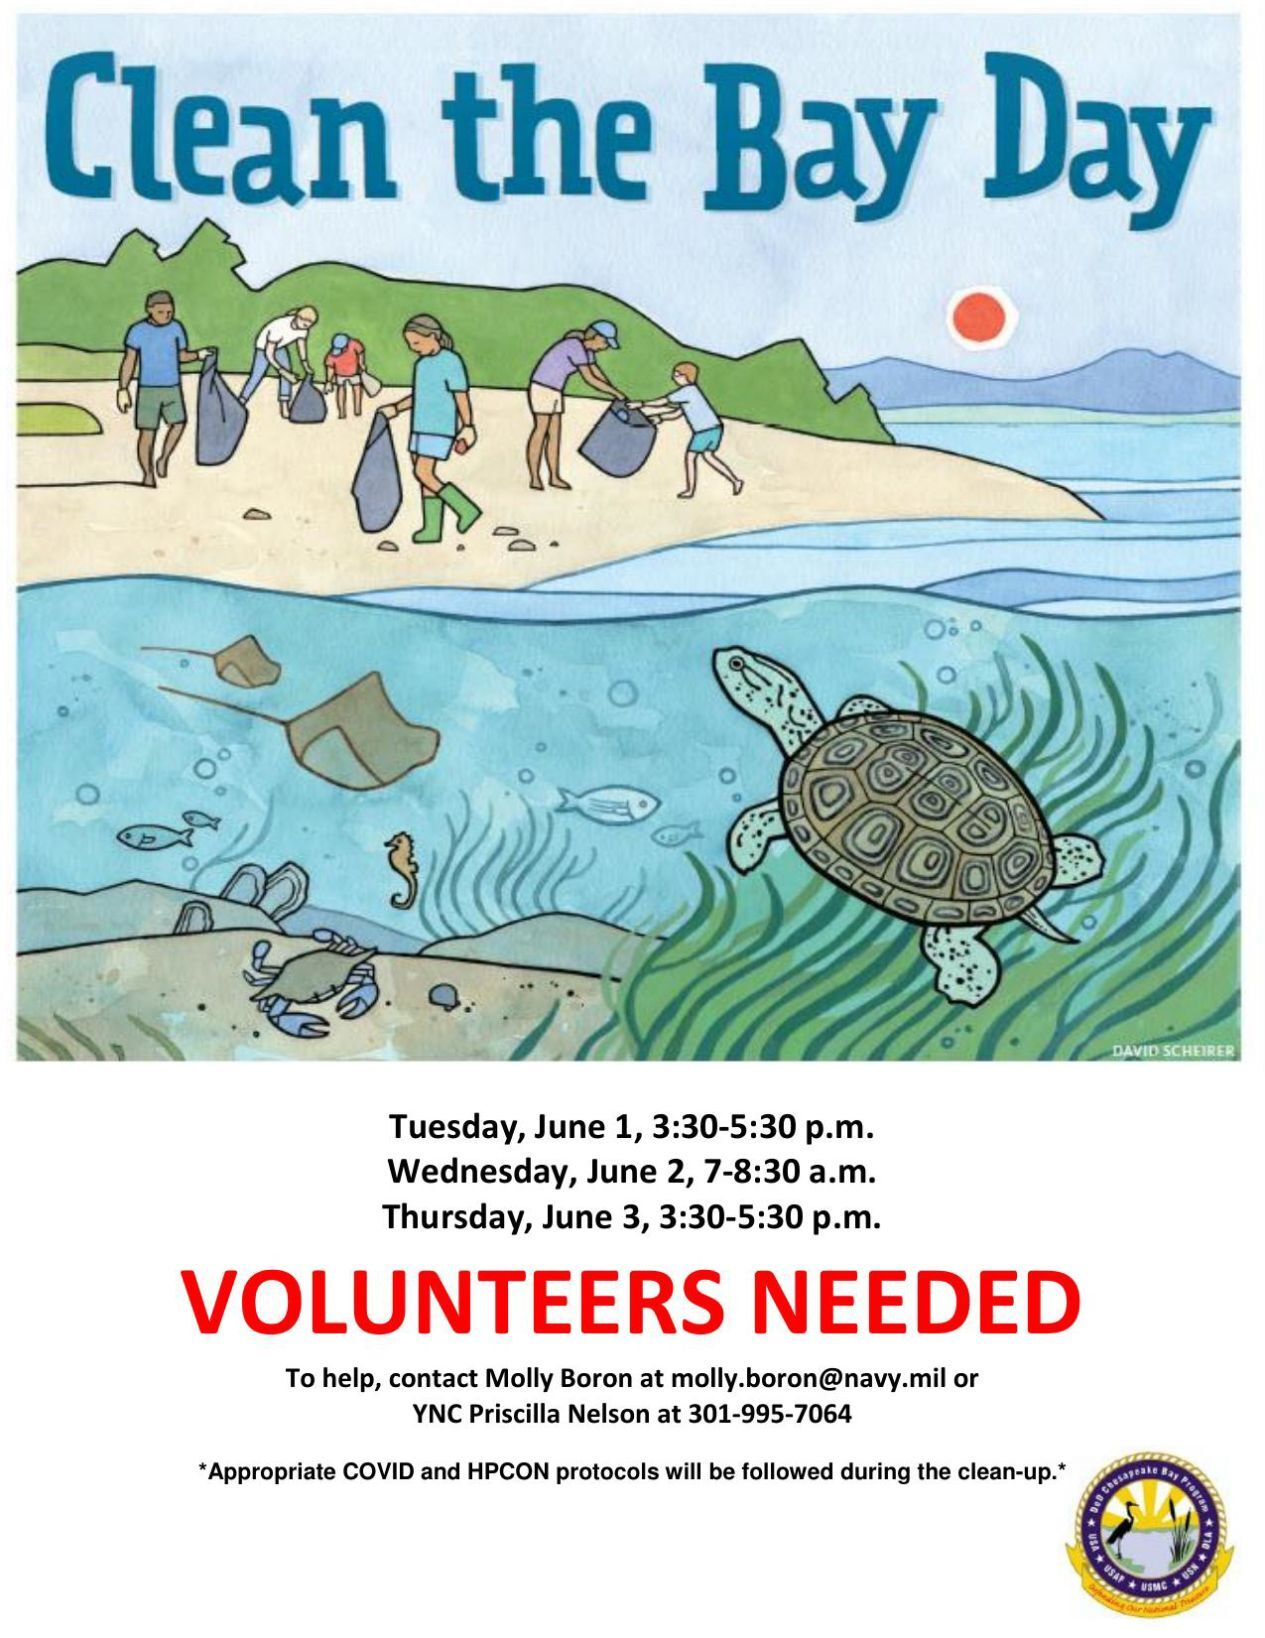 Clean the Bay Day volunteers needed